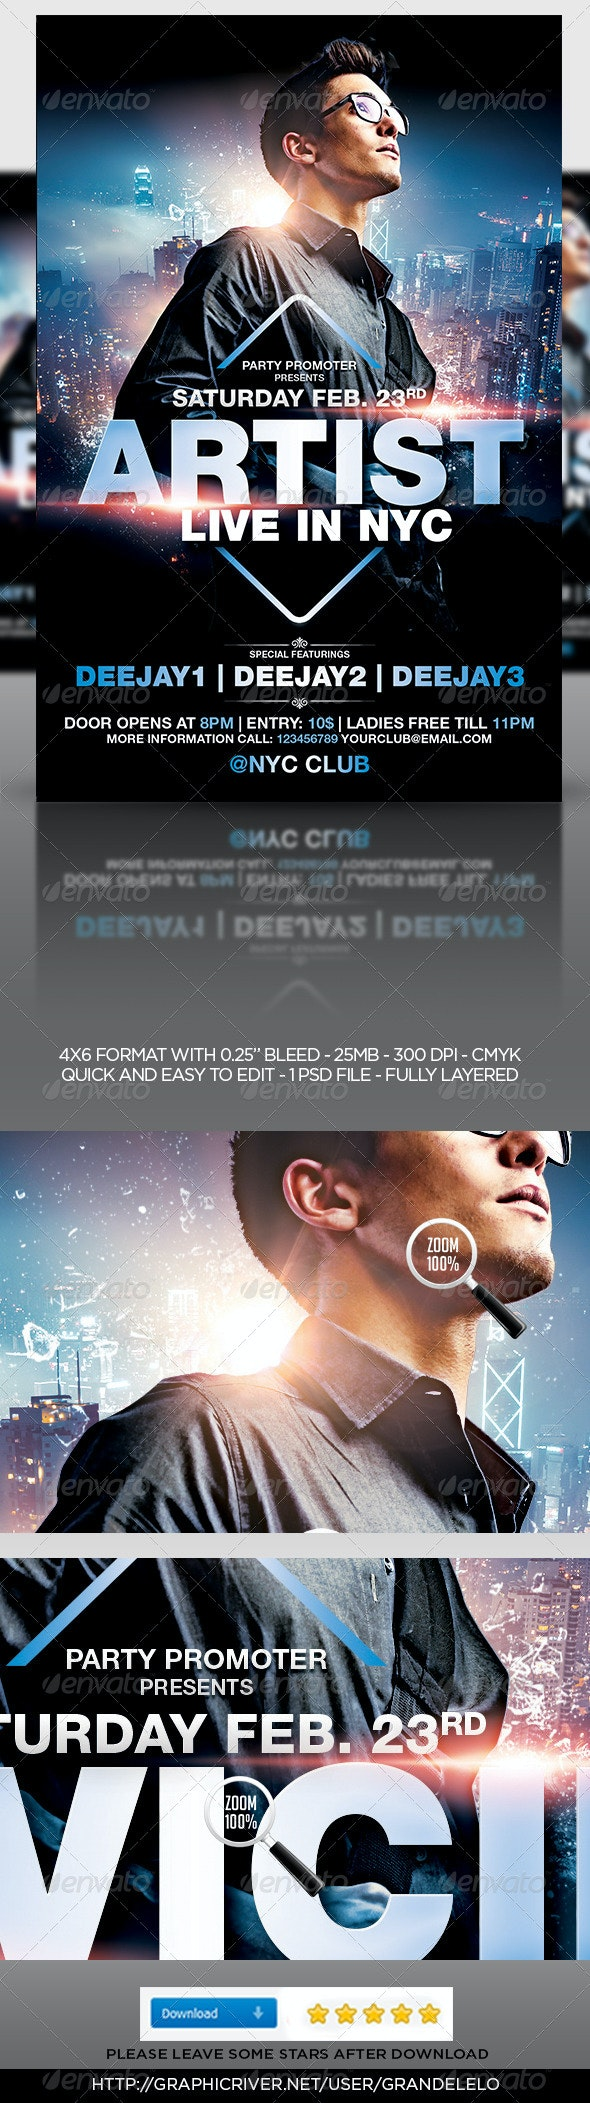 House DJ Party Flyer Template - Clubs & Parties Events